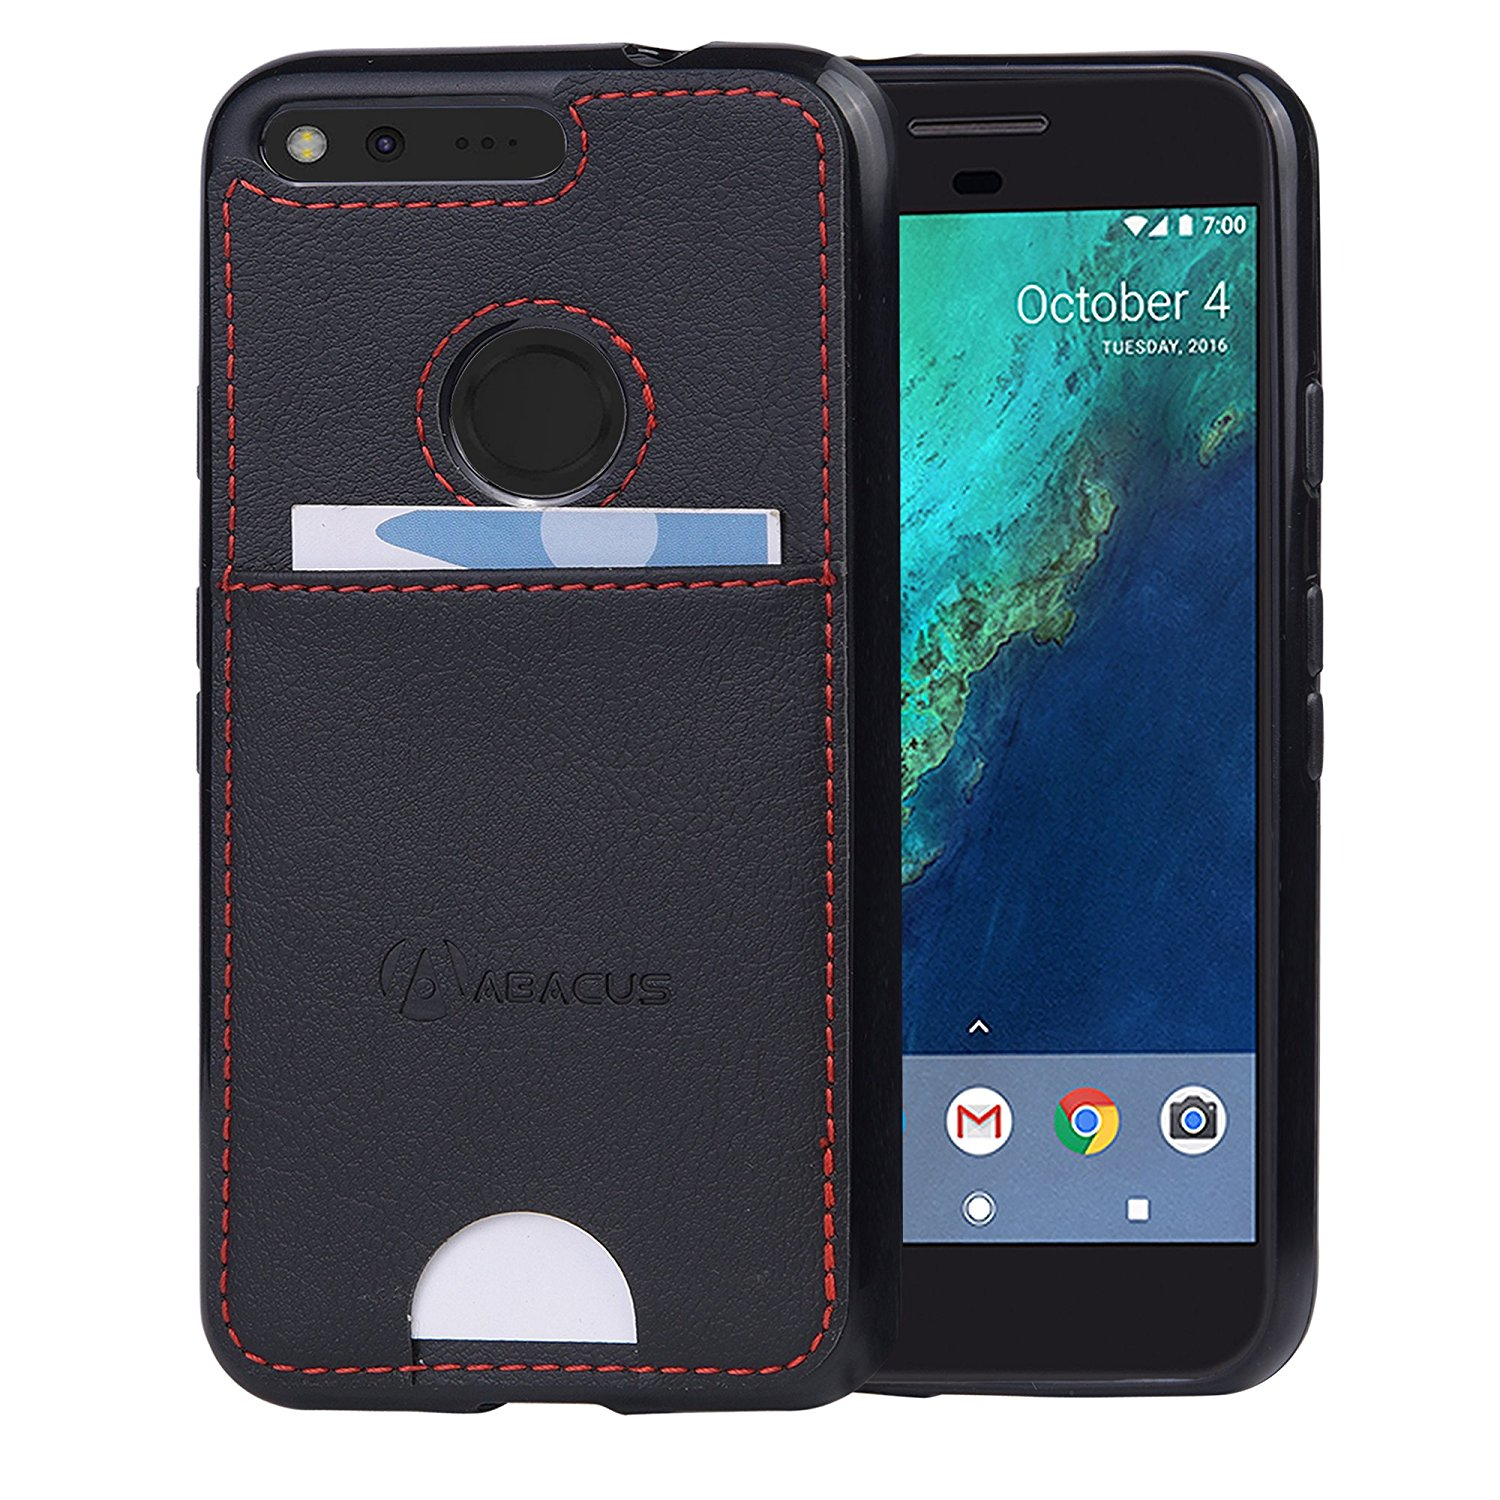 Abacus24-7 Google Pixel Case, Slim Wallet Bumper Cover with Card Pocket, Black